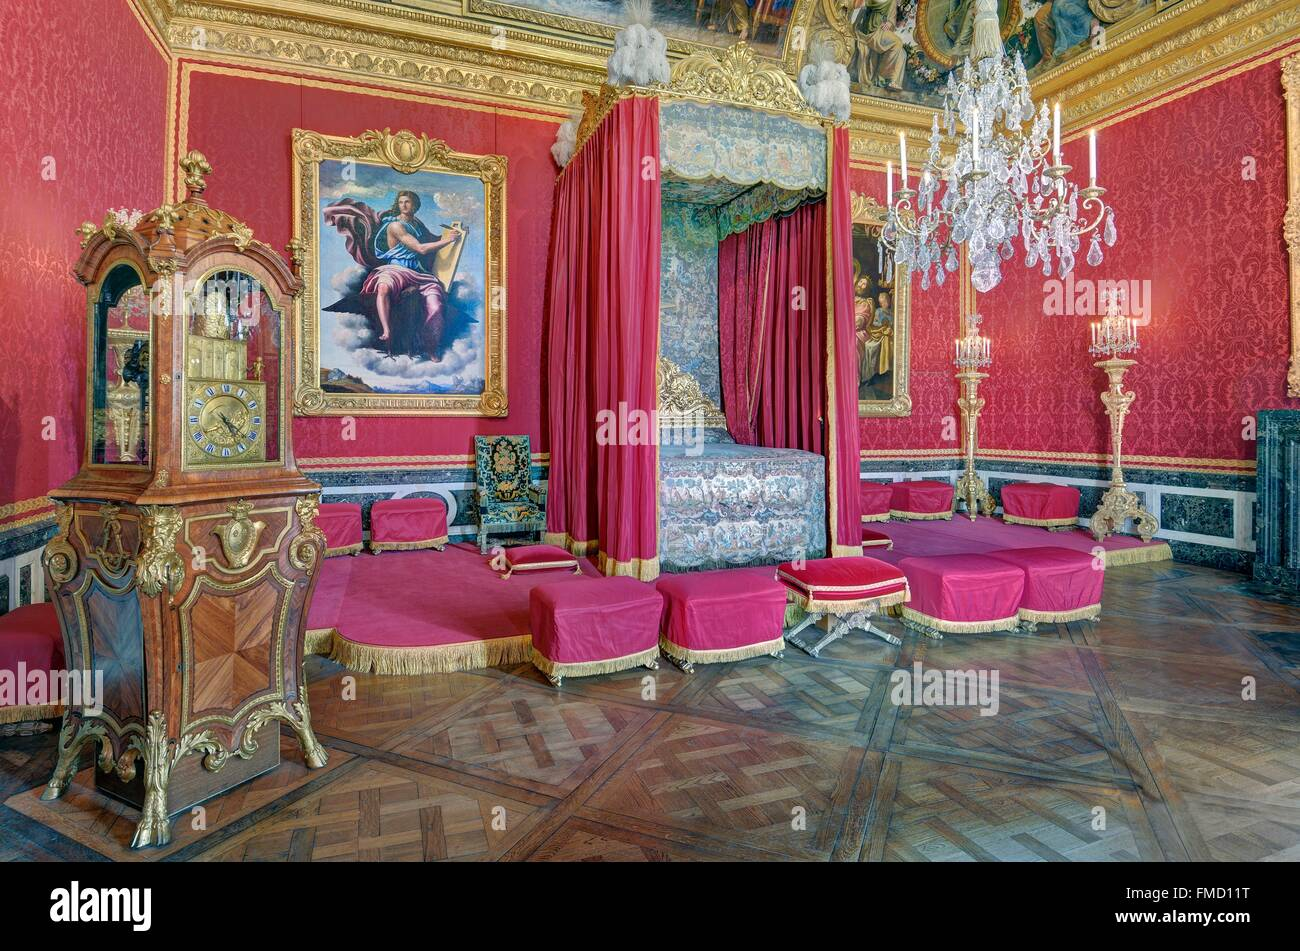 France, Yvelines, palace of Versailles listed as World Heritage by UNESCO, Mercury room was one of the king's - Stock Image